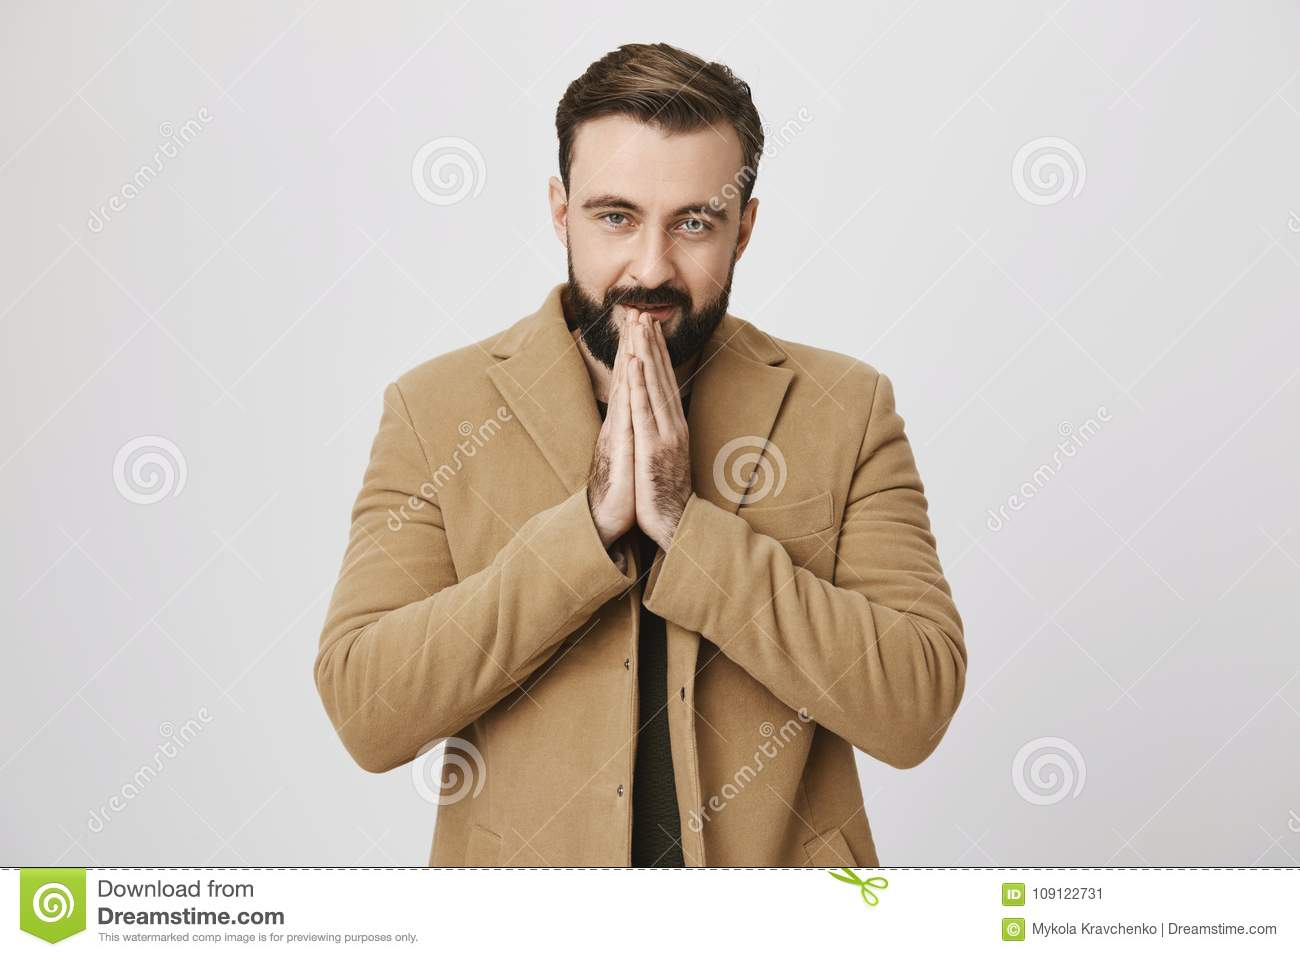 Indoor waist-up portrait of attractive bearded european model in coat, heating hands with warm breath, feeling cold